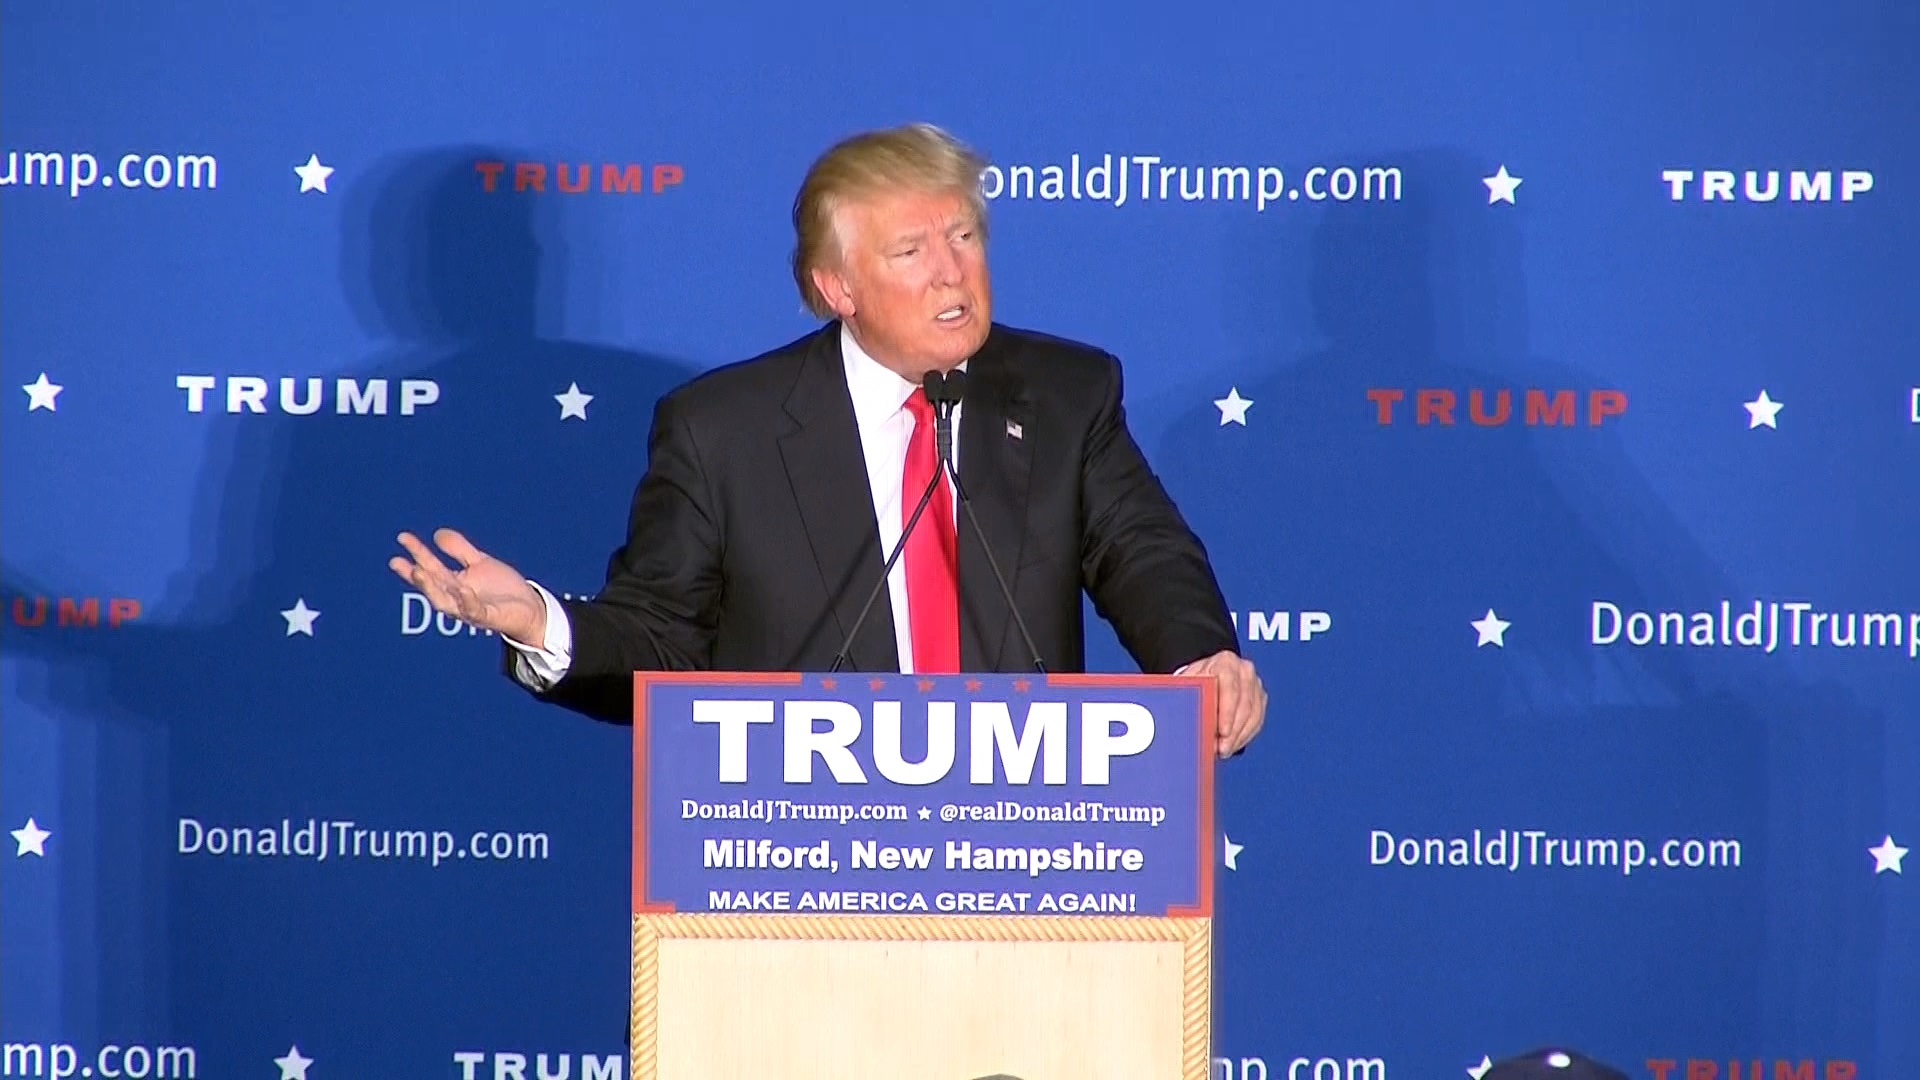 Trump slams Cruz on Carson rumors